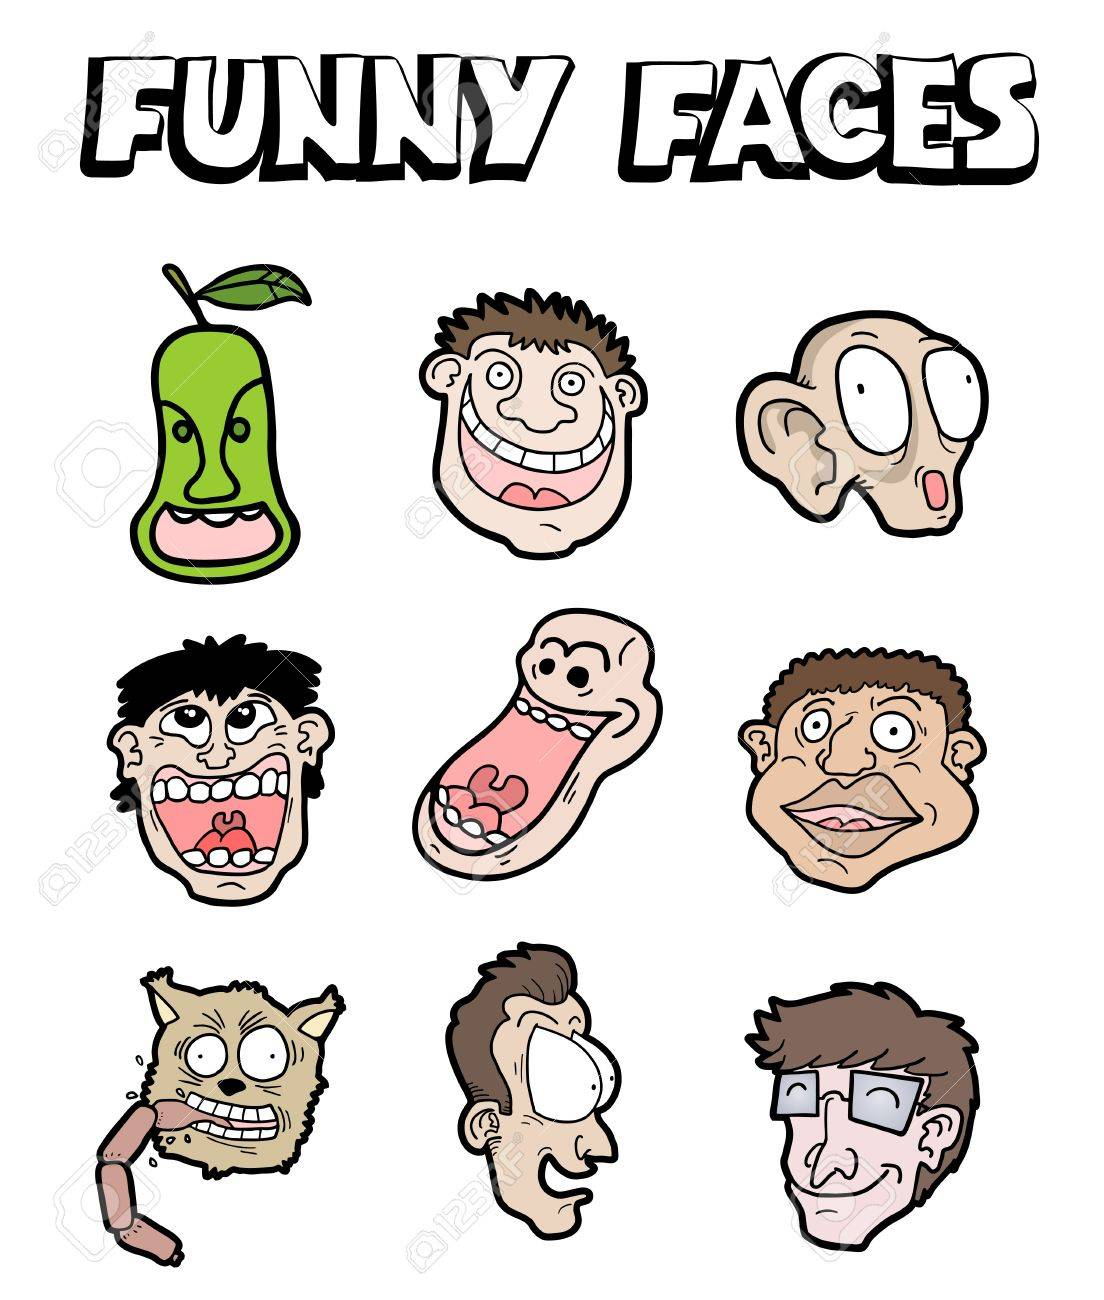 Funny faces Stock Vector - 19295962